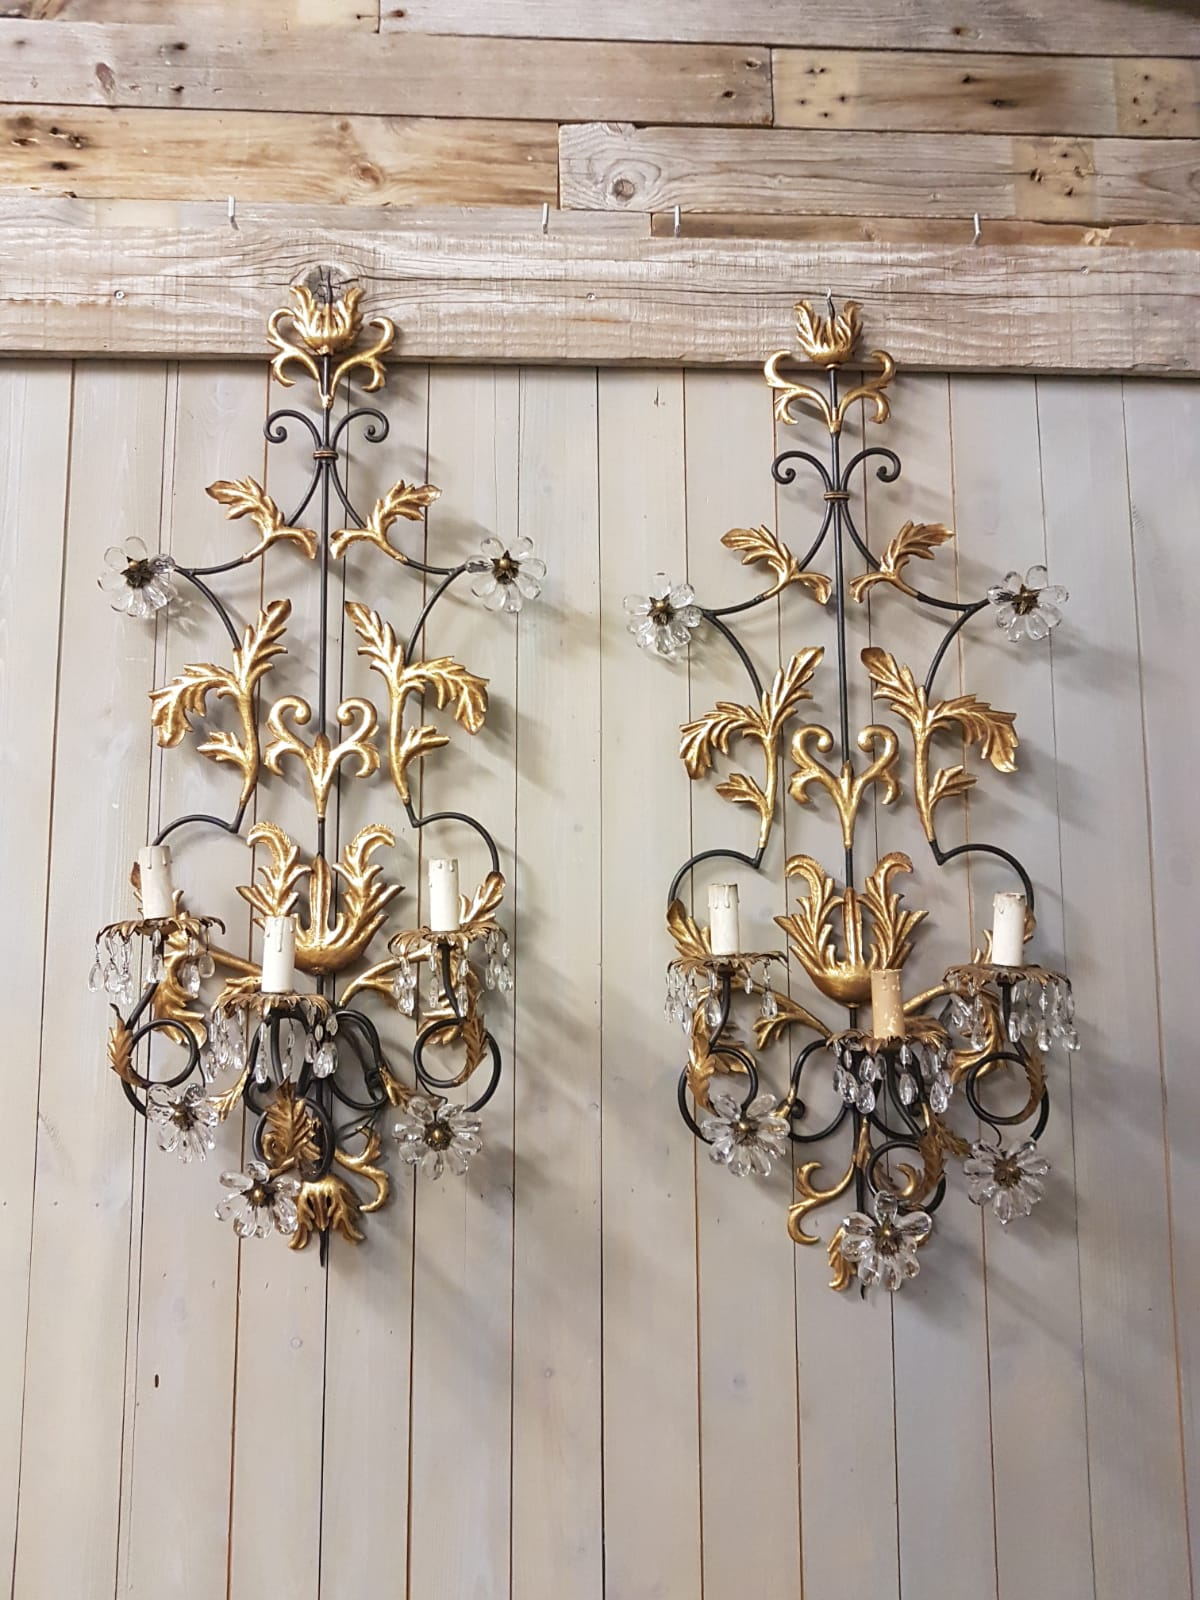 #6760-UCGG - Pair of Iron Sconces